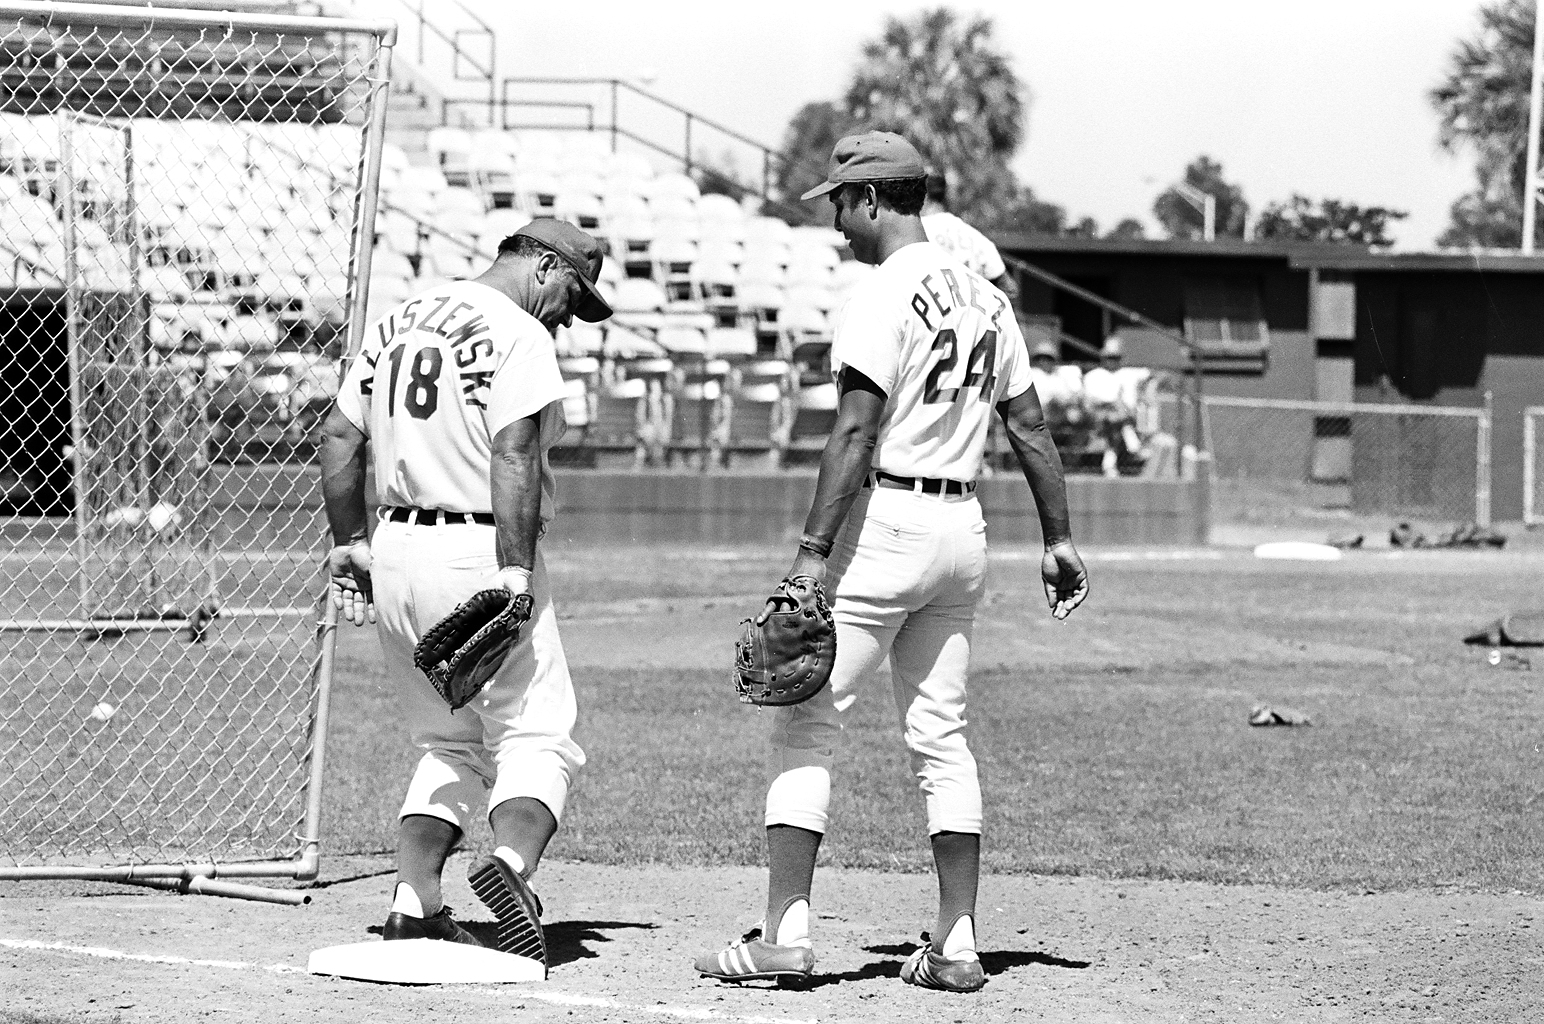 """Tony receives fielding advice from another beloved Reds first baseman, Ted Kluszewski in spring training, 1972. """"Big Klu,"""" a fellow slugger from two baseball generations earlier, was the team's hitting instructor."""